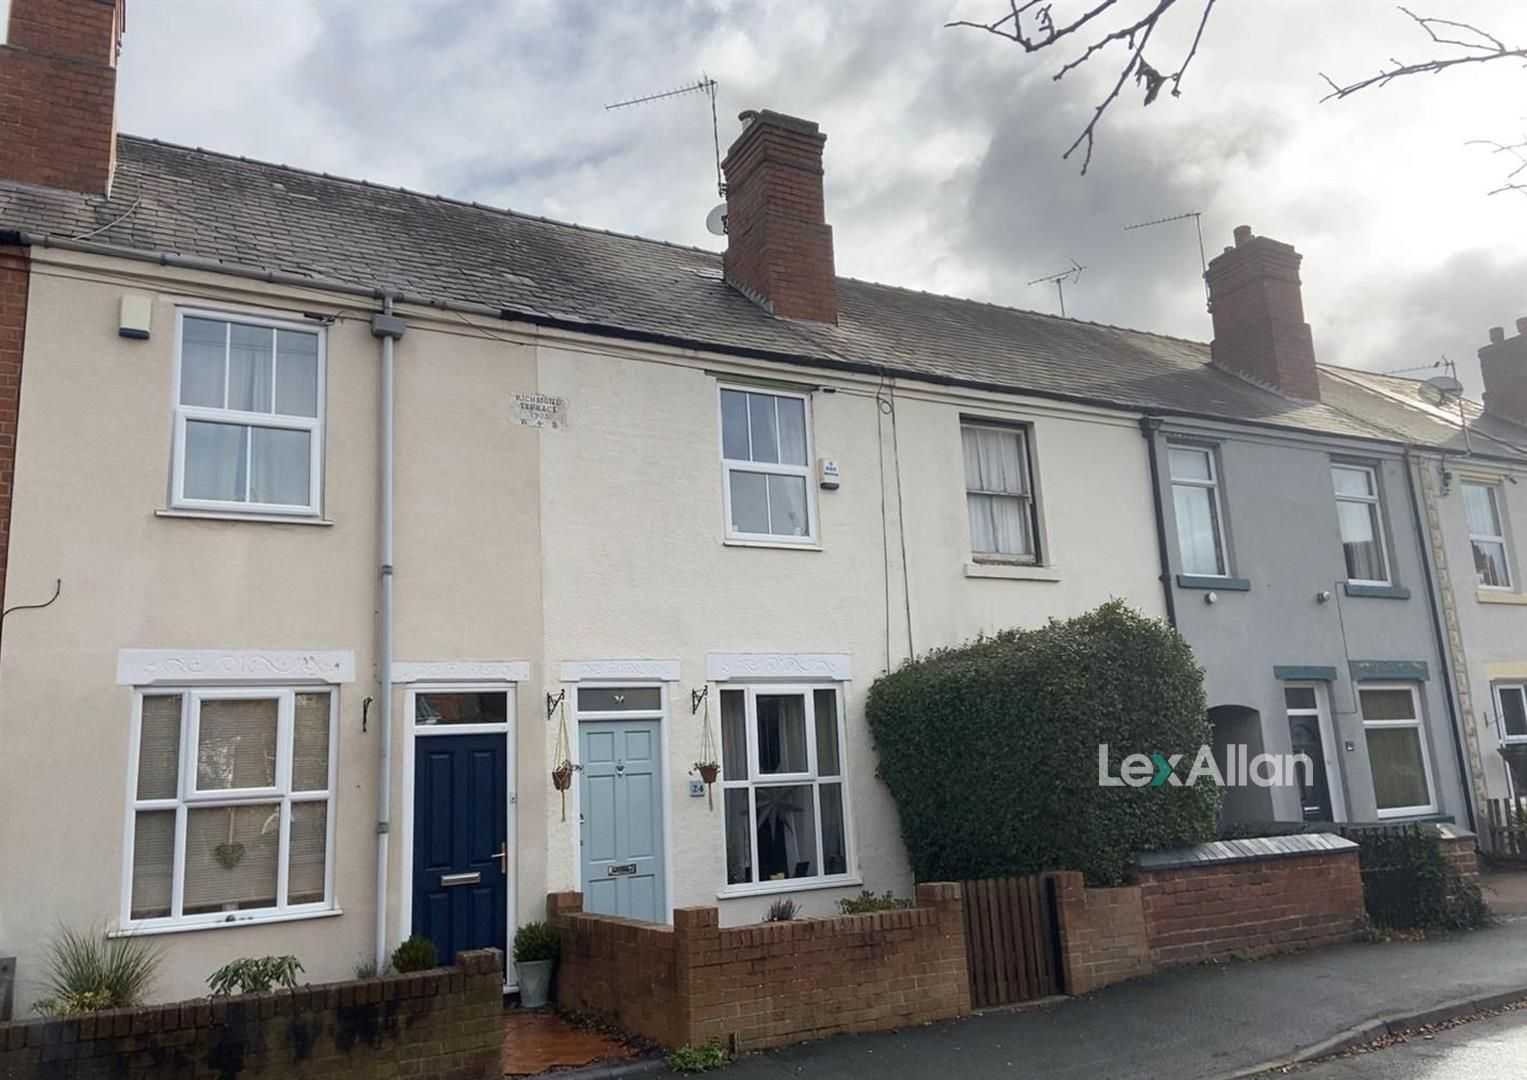 3 bed terraced for sale in Wollaston  - Property Image 1